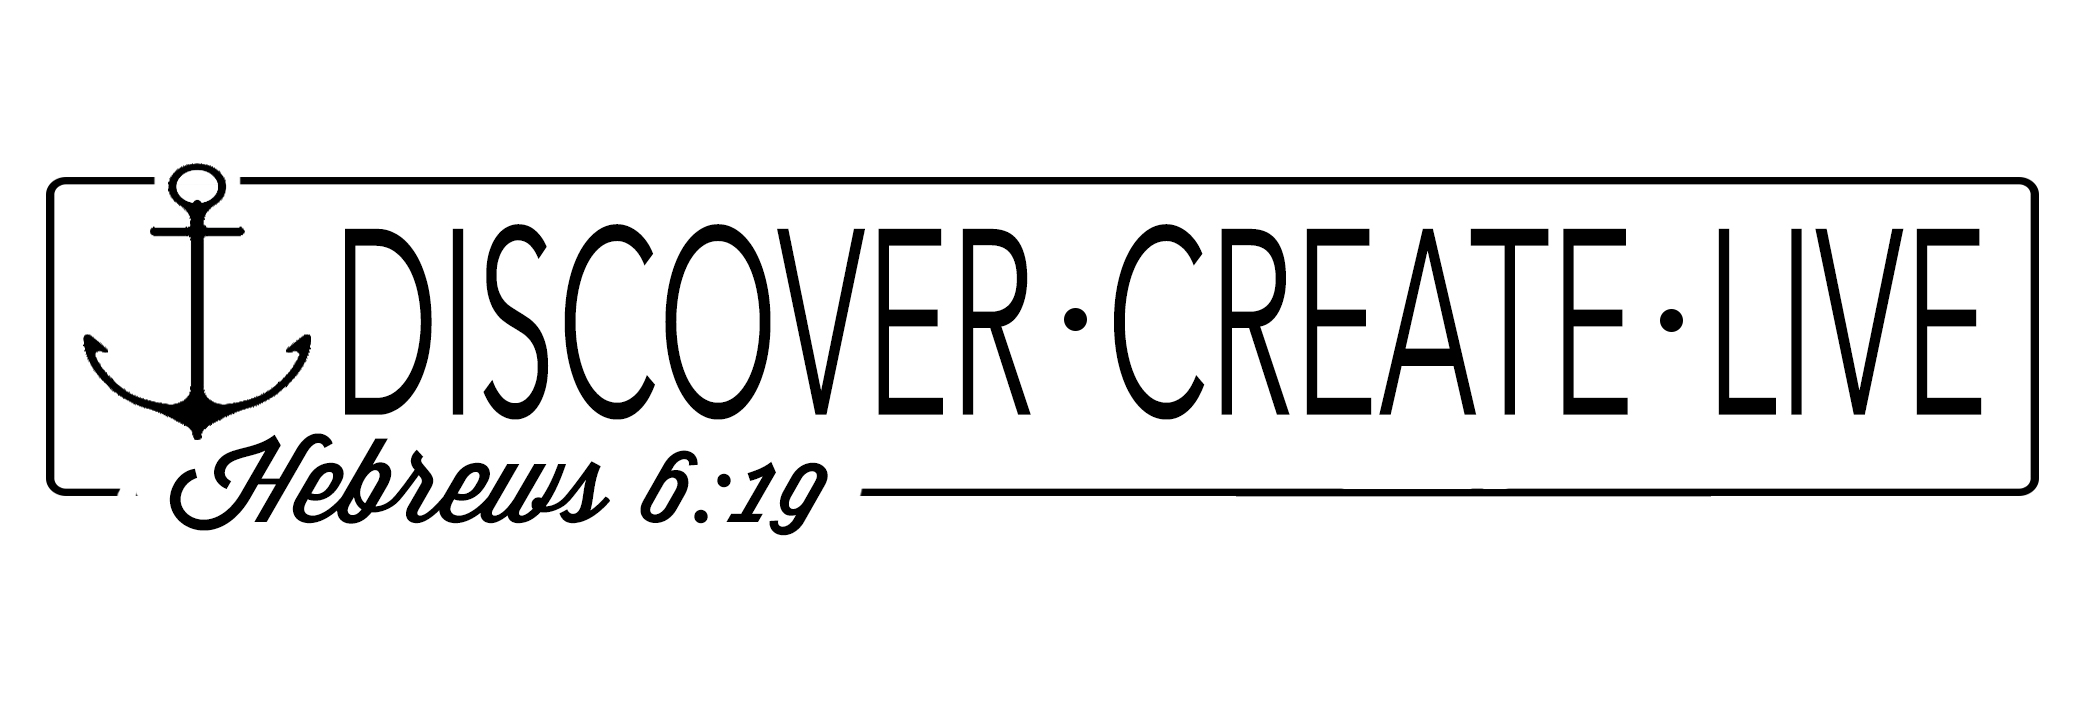 Discover. Create. Live.